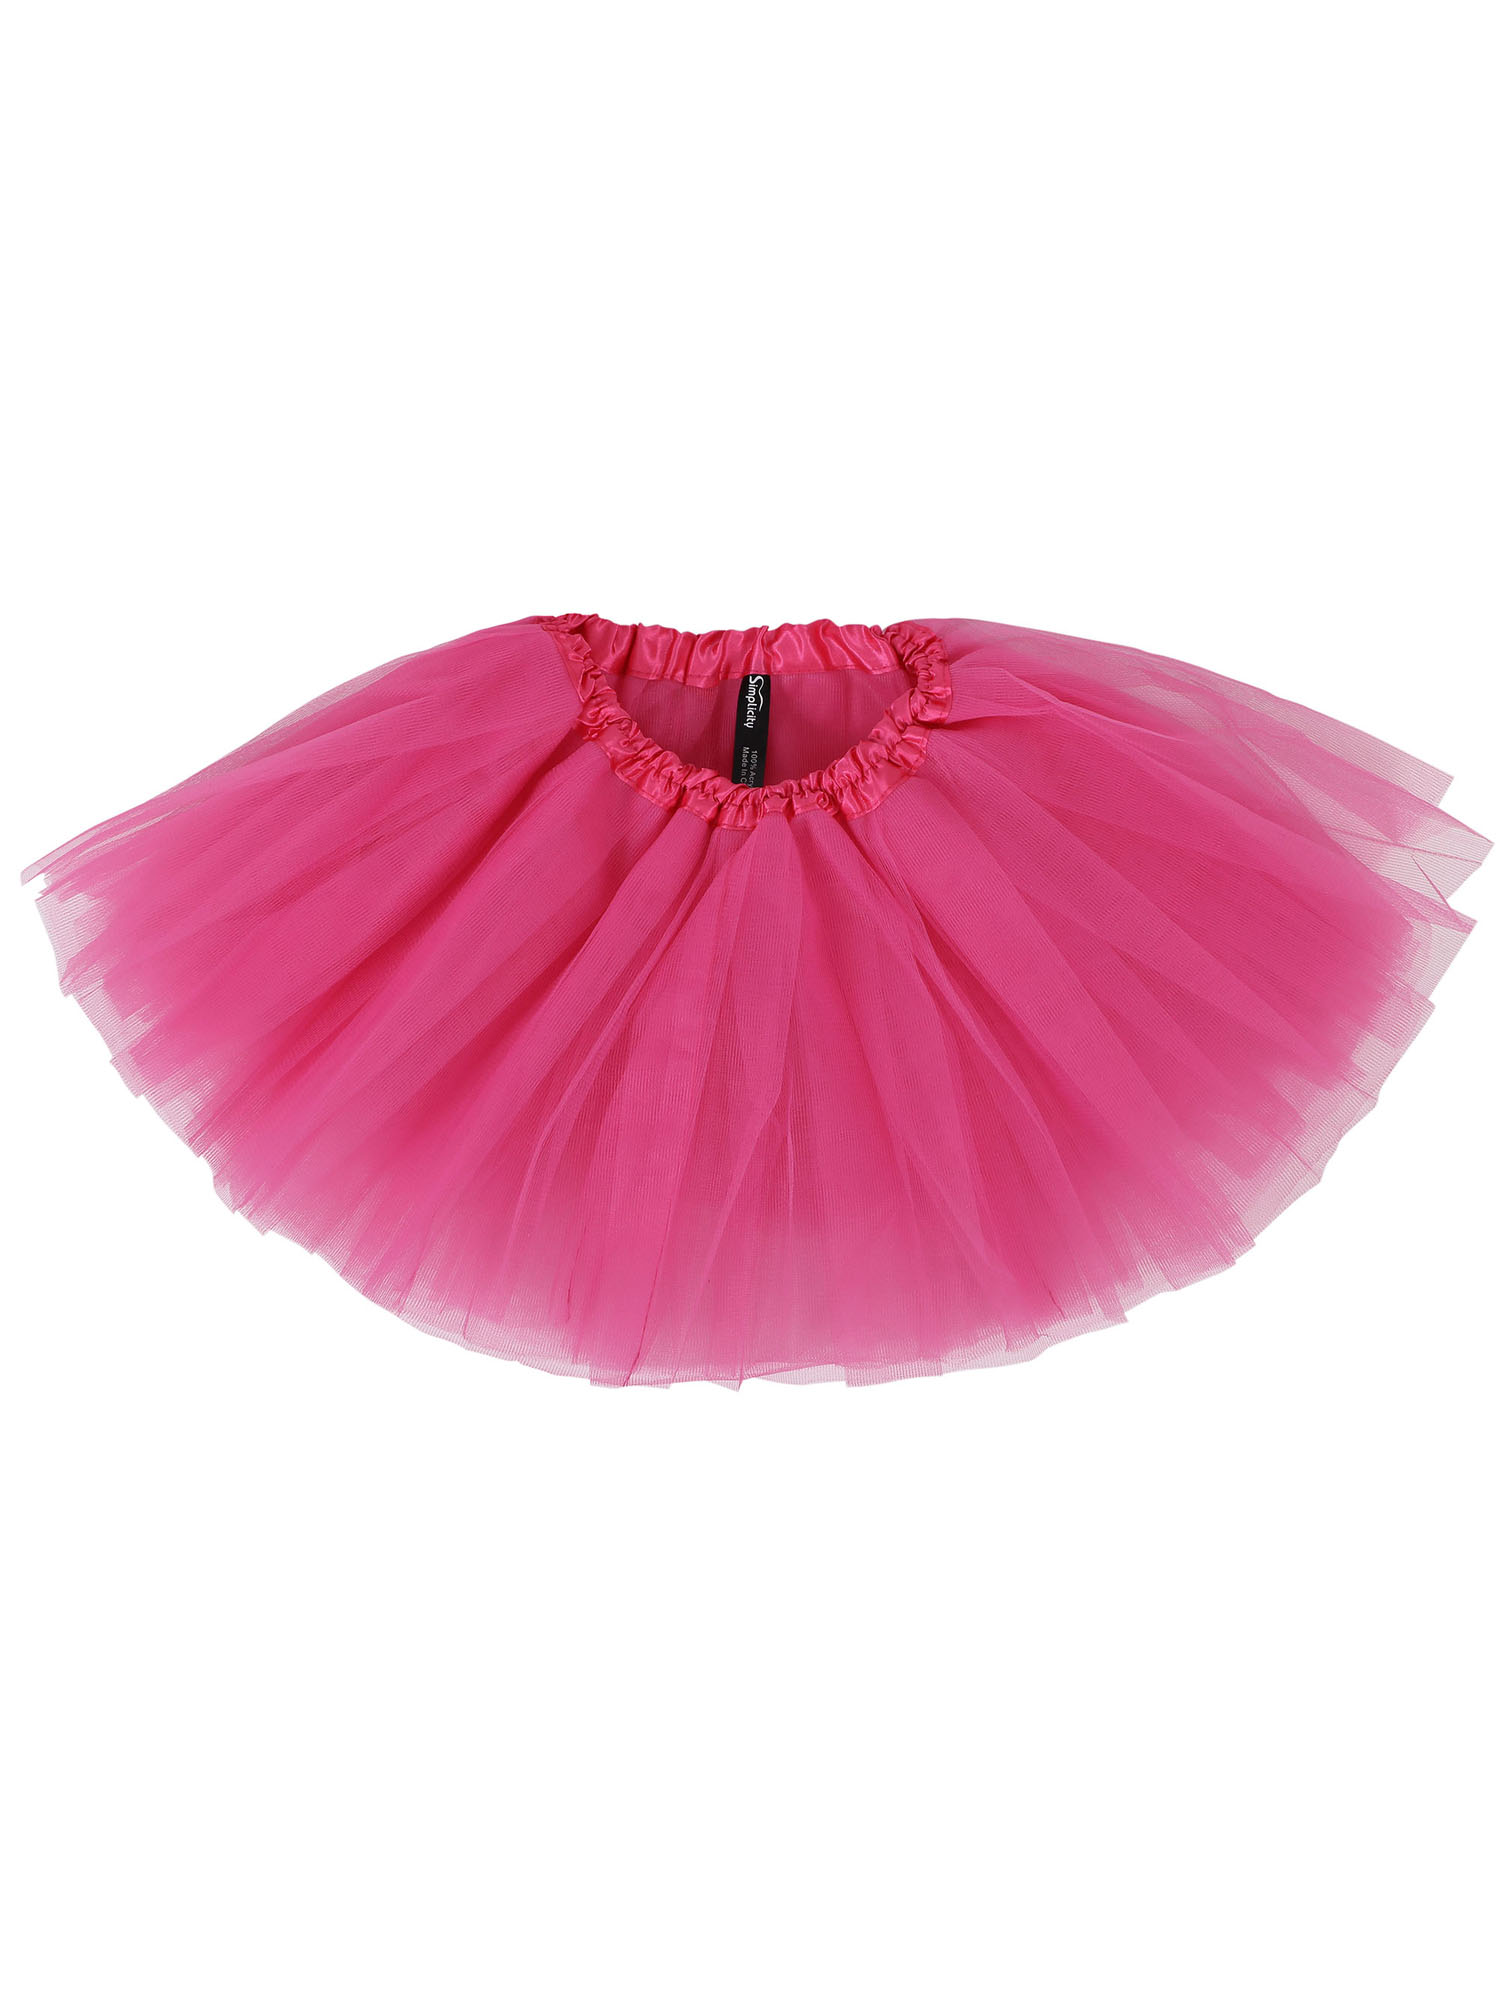 Simplicity Tollder Classic 5 layered Tulle Tutu Skirts Dance Cosplay Dress, Rose